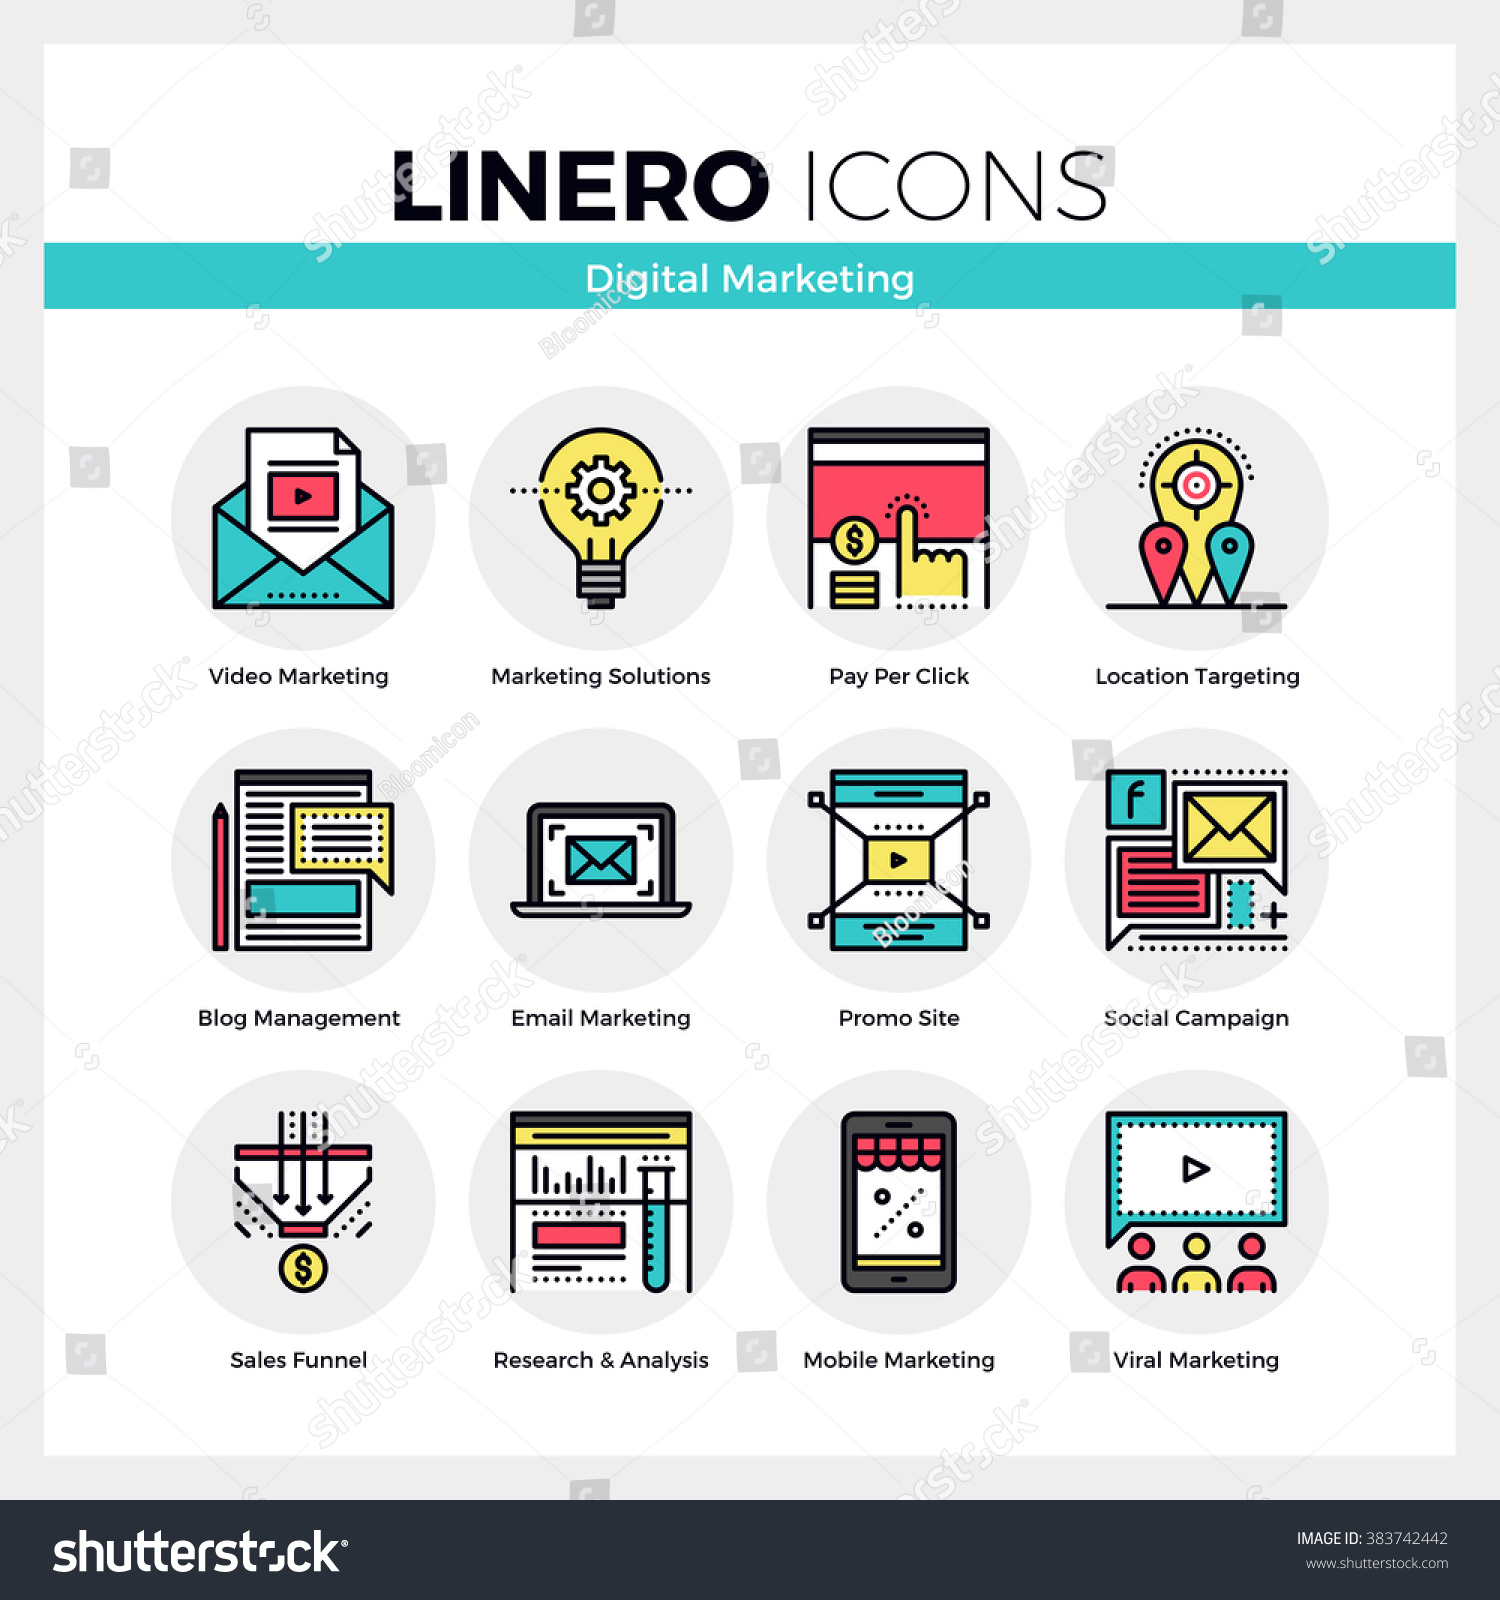 Viral Ad: Line Icons Set Of Digital Marketing And Viral Advertising